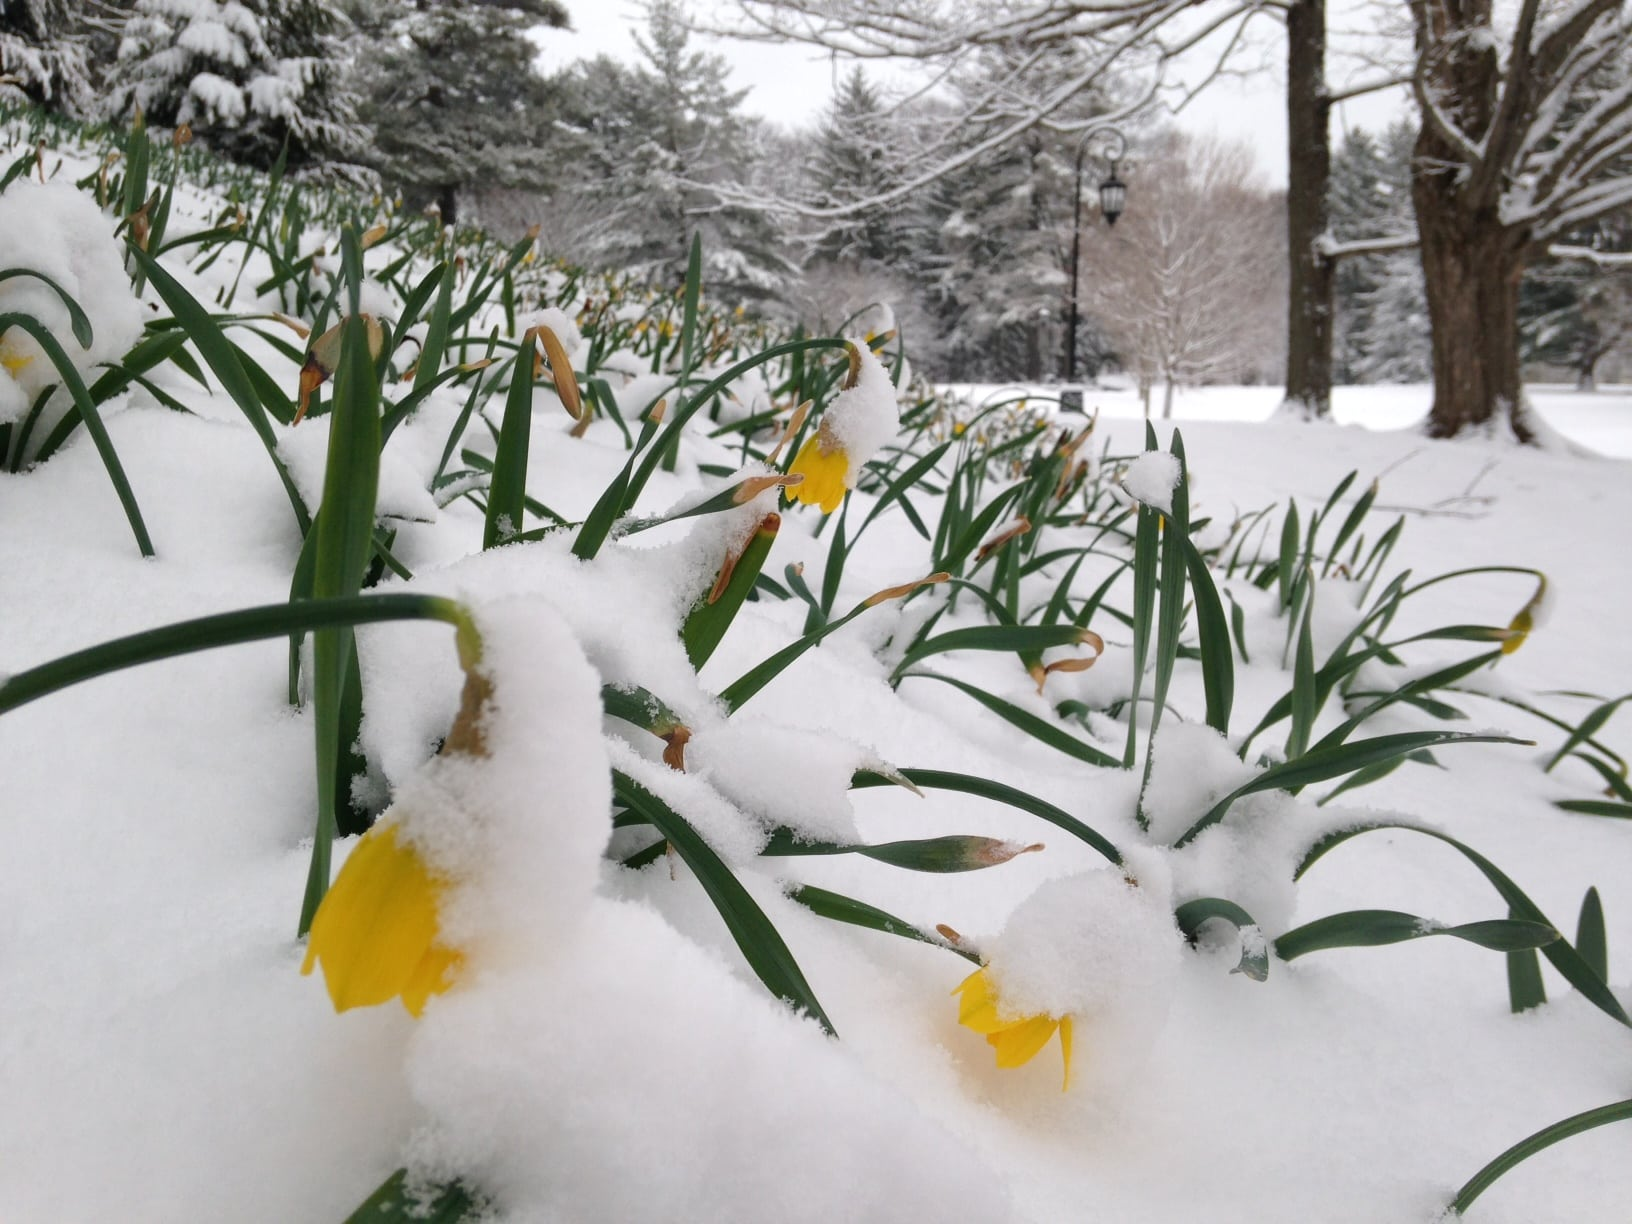 Wellesley College, Daffodil Hill, Spring 2016 snow storm